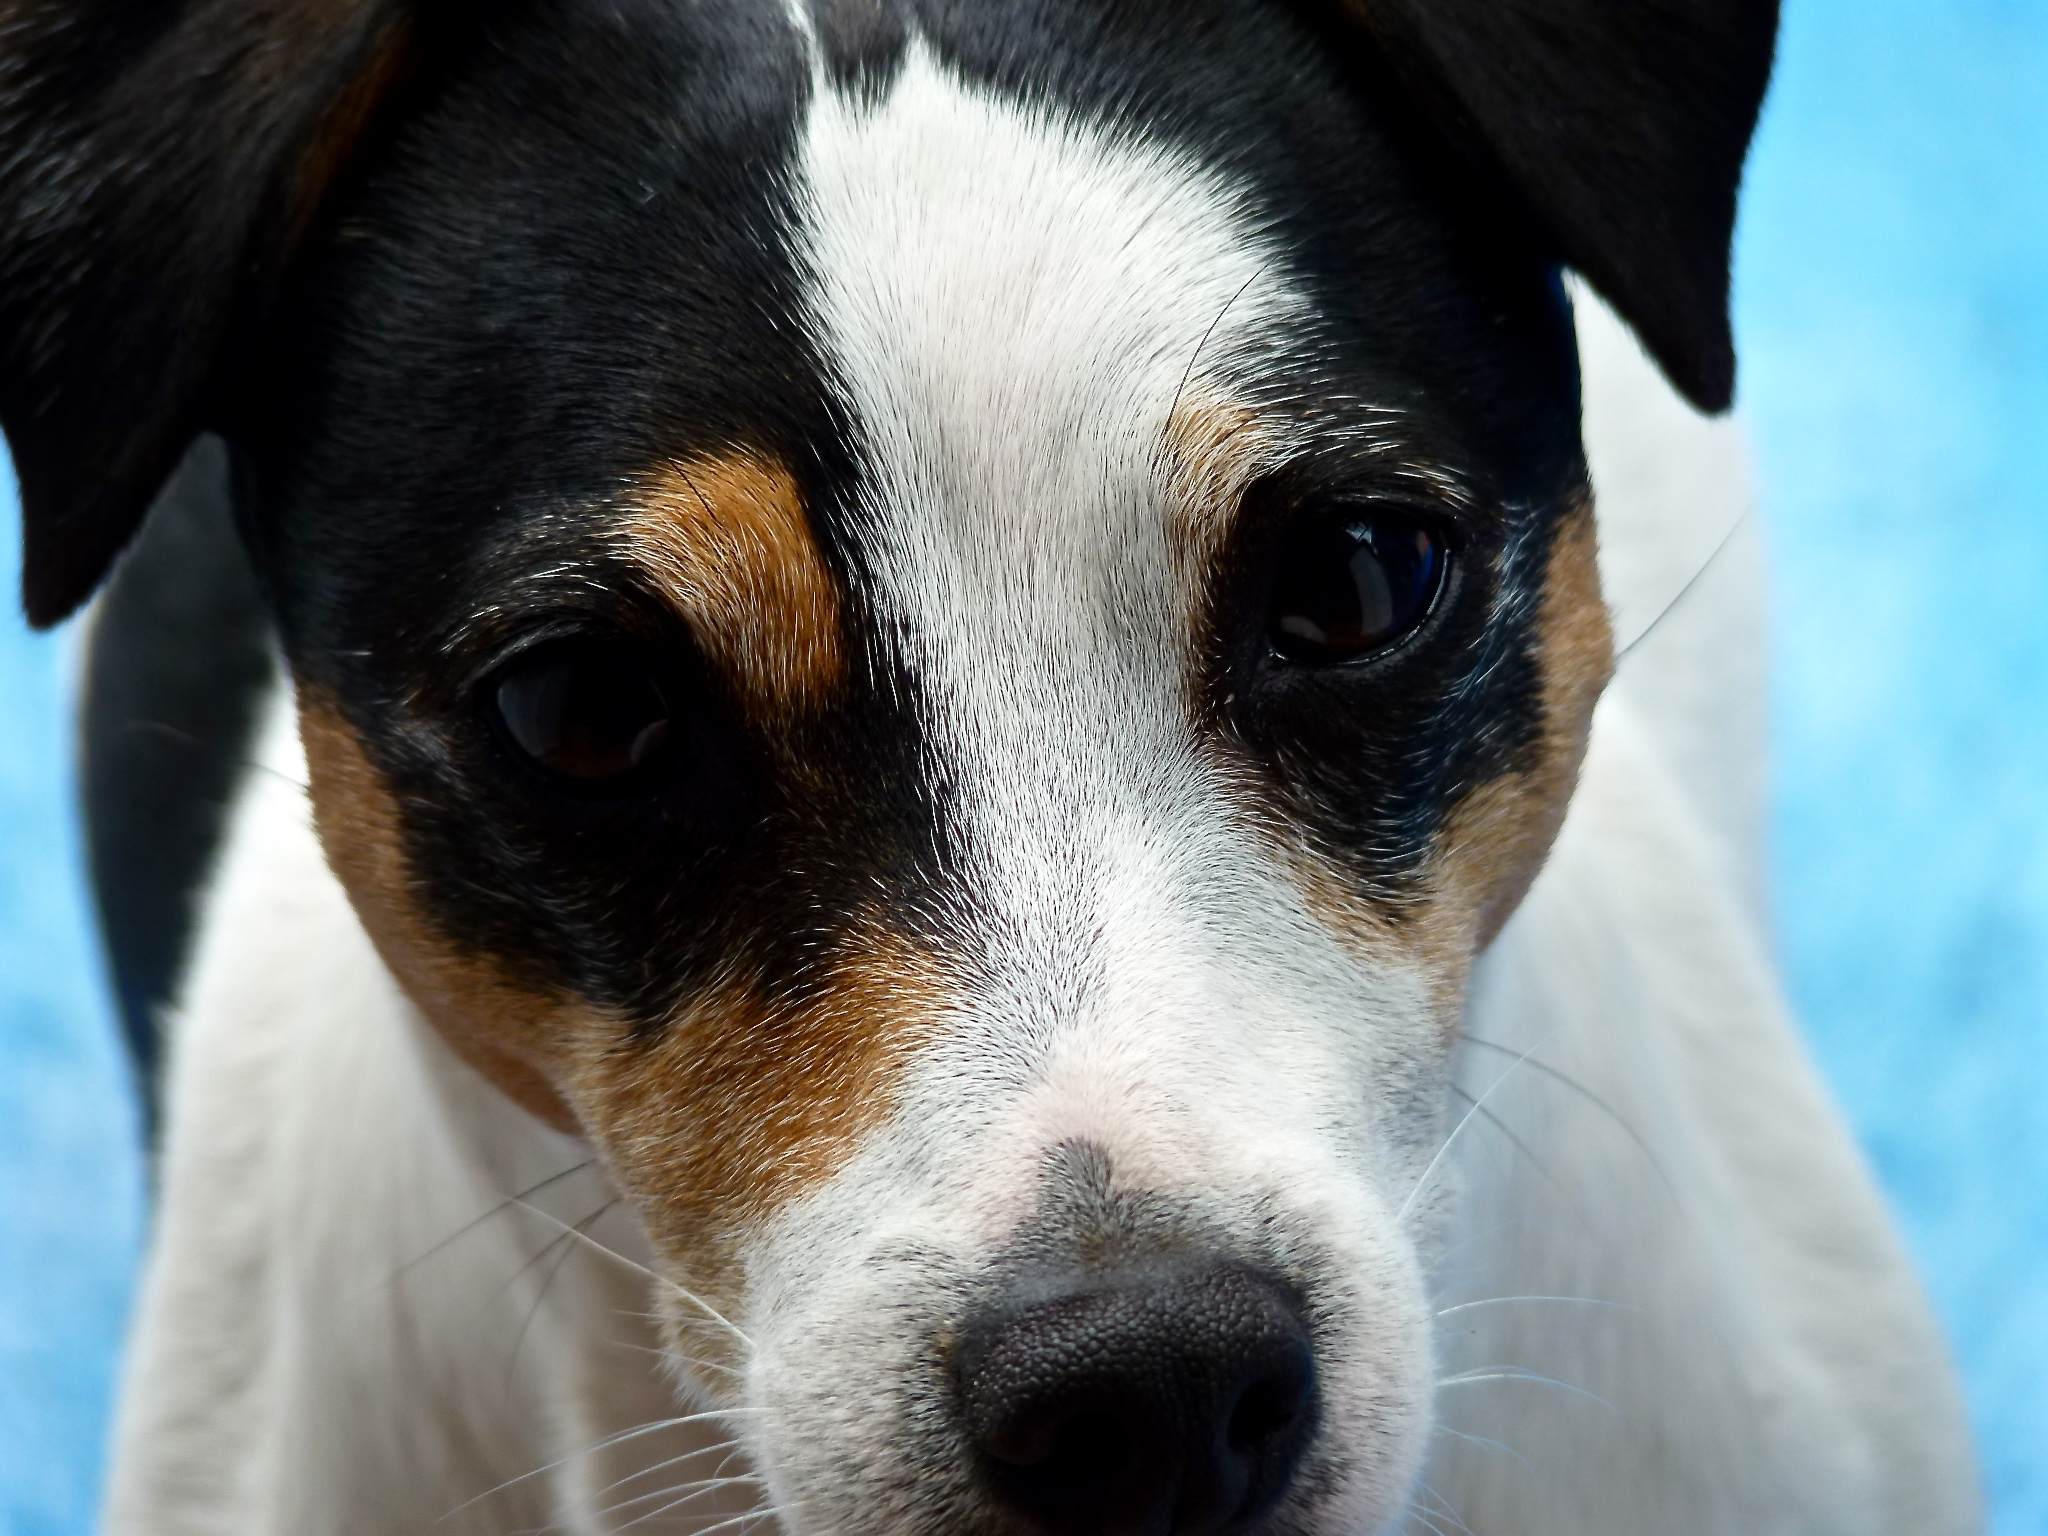 """I am a Jack Russell Terrier. Or at least I think I am. I don't have a birth certificate and no one knows my parents. Humans call me a """"rescue dog"""" because I was rescued from a place where I was very unhappy. But don't worry, things have turned out great for me so far!"""